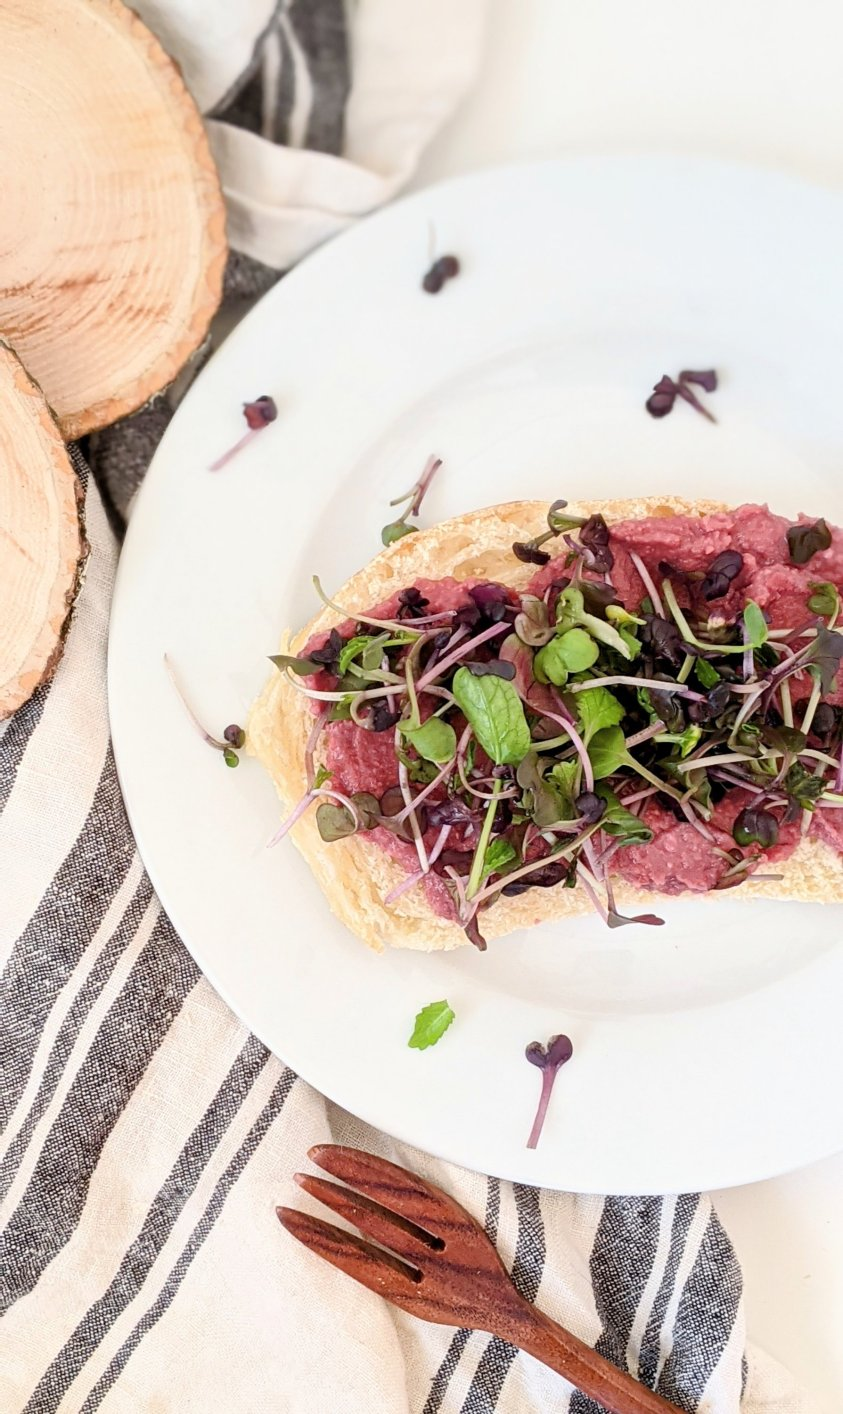 beet hummus tartine recipe open faced sandwich with beet hummus and microgreens healthy sprouts and beets sandwich vegan gluten free breakfast or snack or light lunch tartines